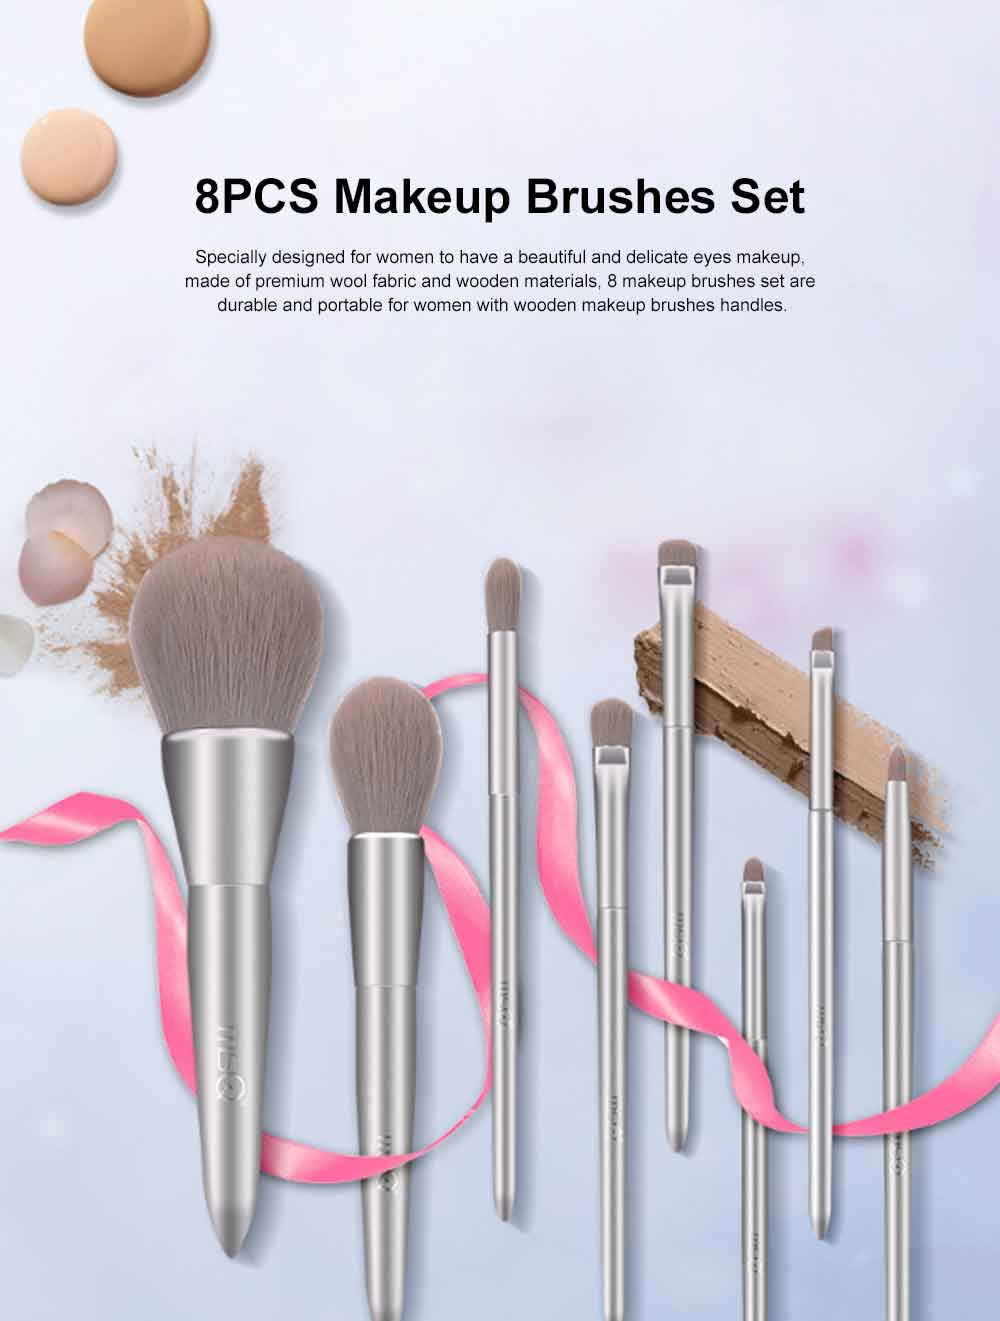 8PCS Makeup Brushes Set with Pearly Solid Wood Brush Rod and Brush Barrels 0